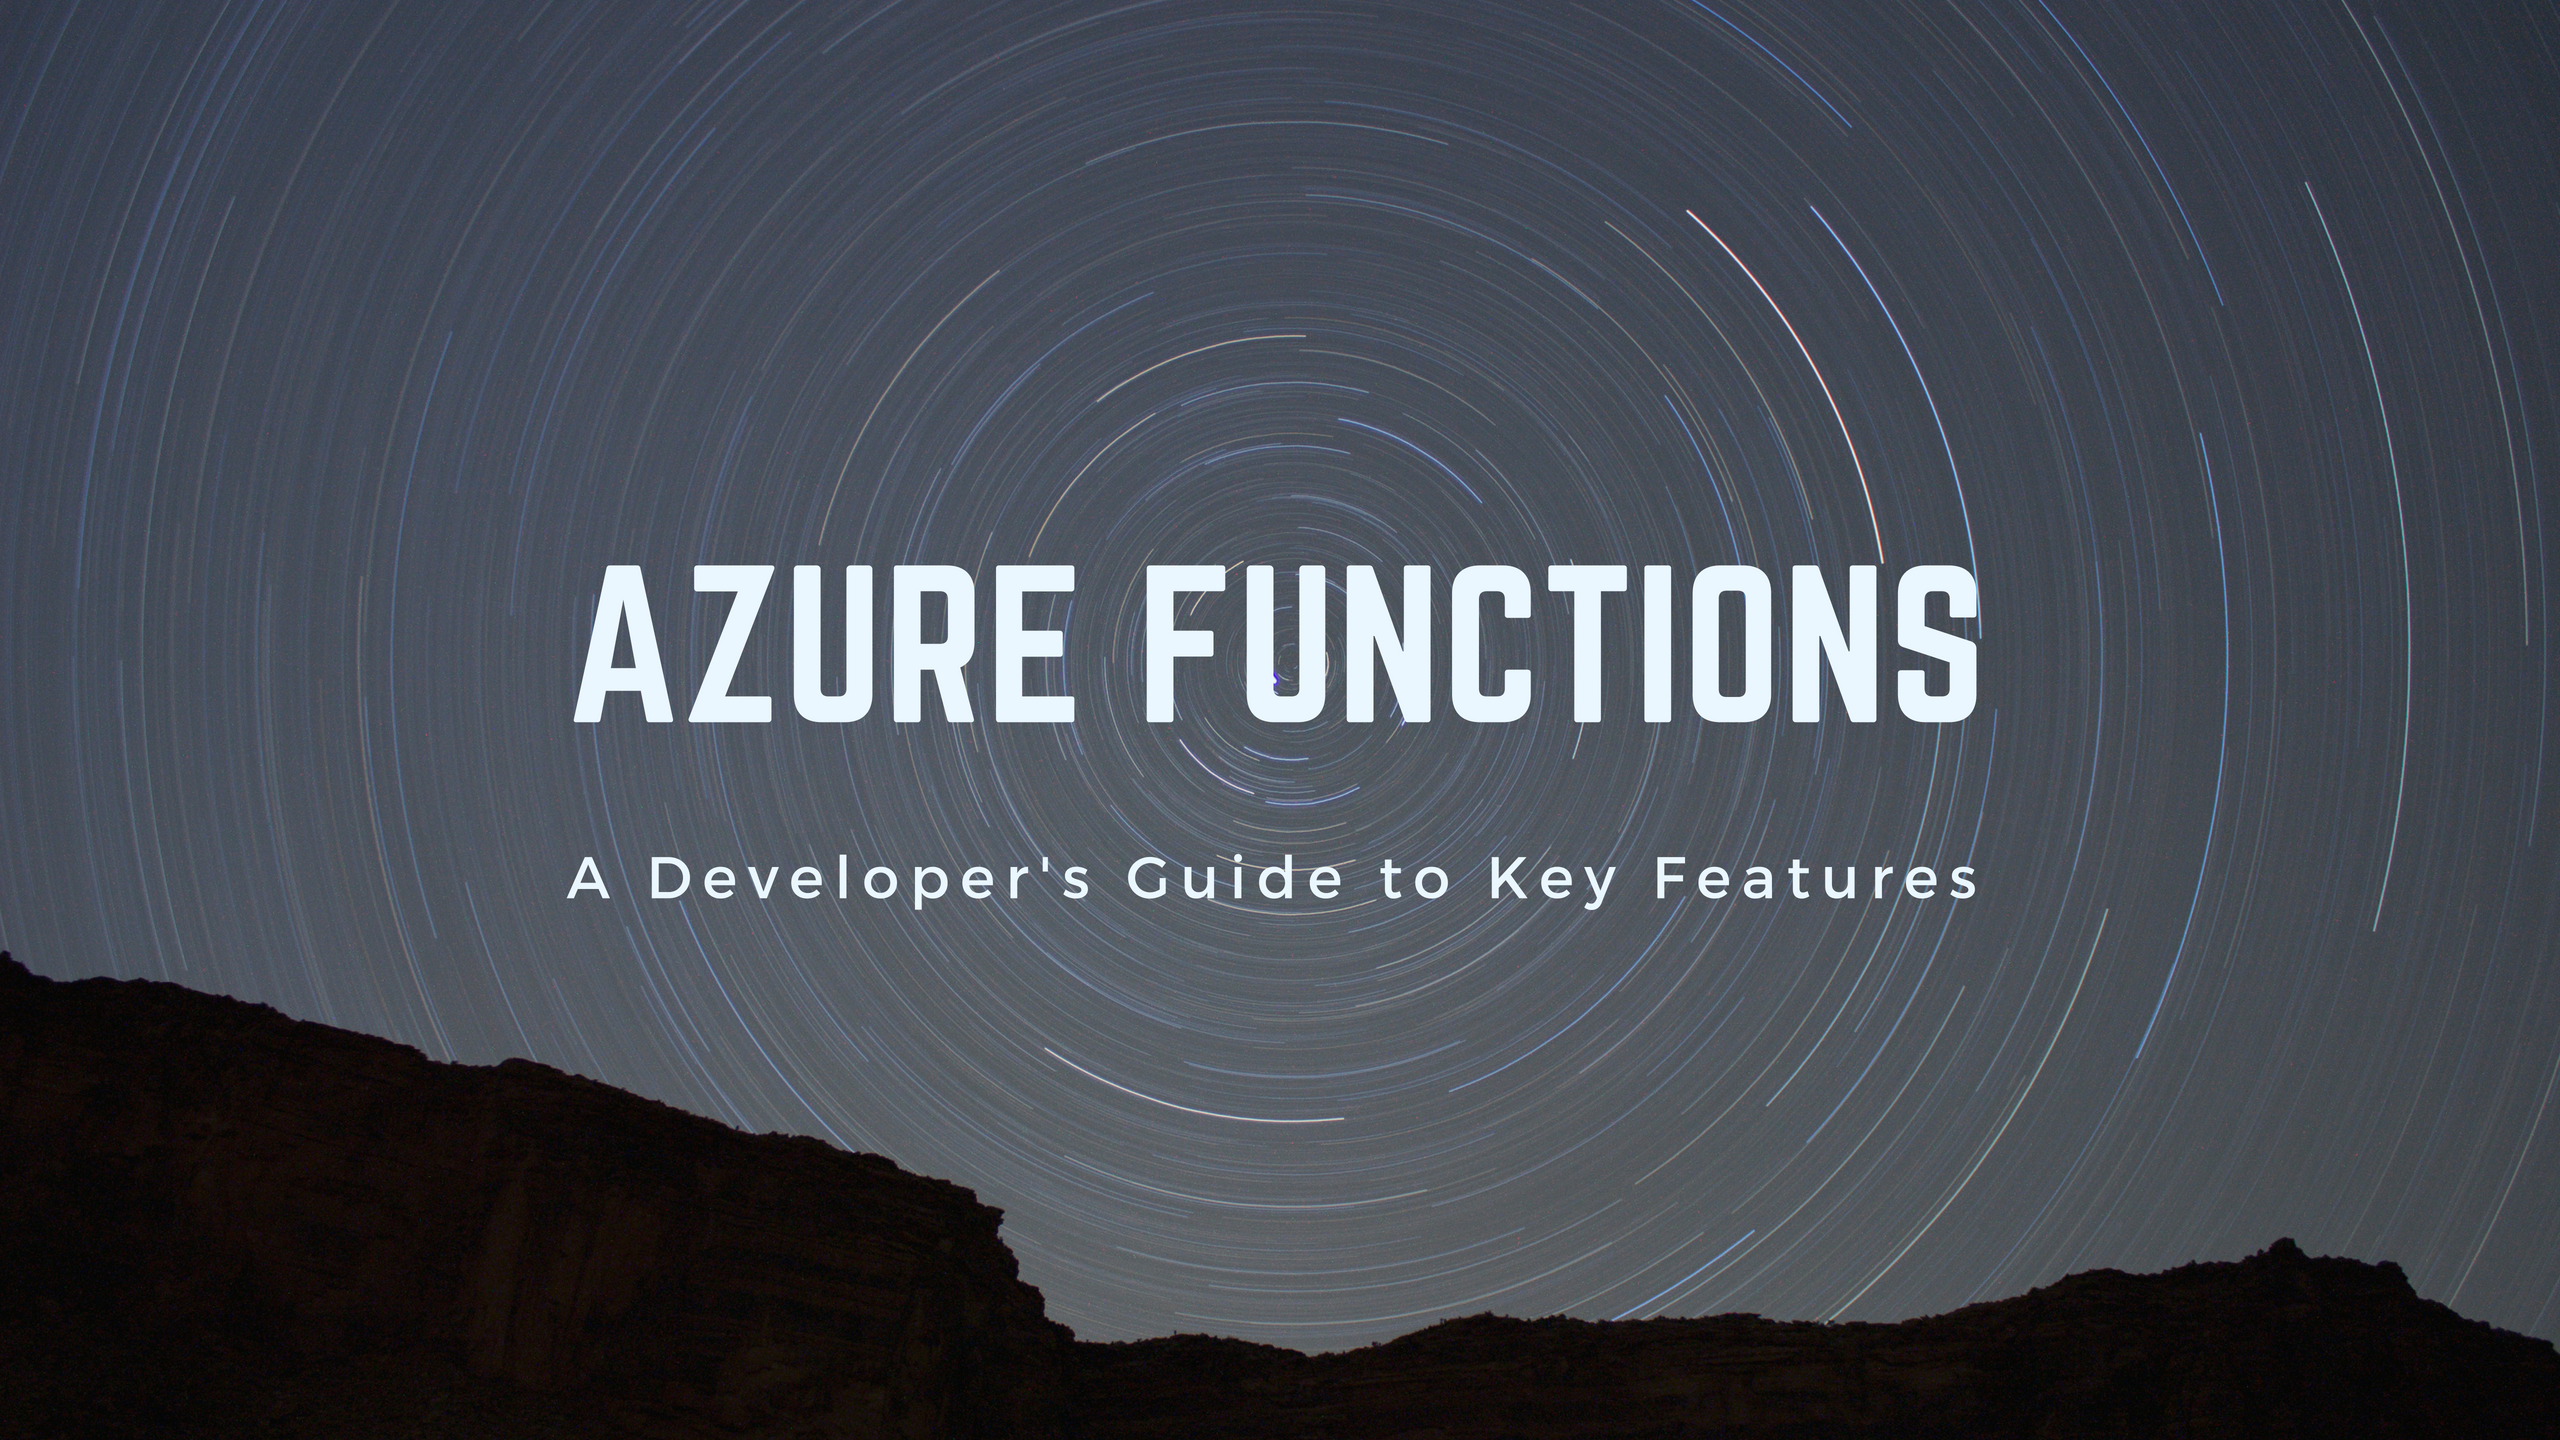 How to get started with Azure Functions - A Cloud Guru